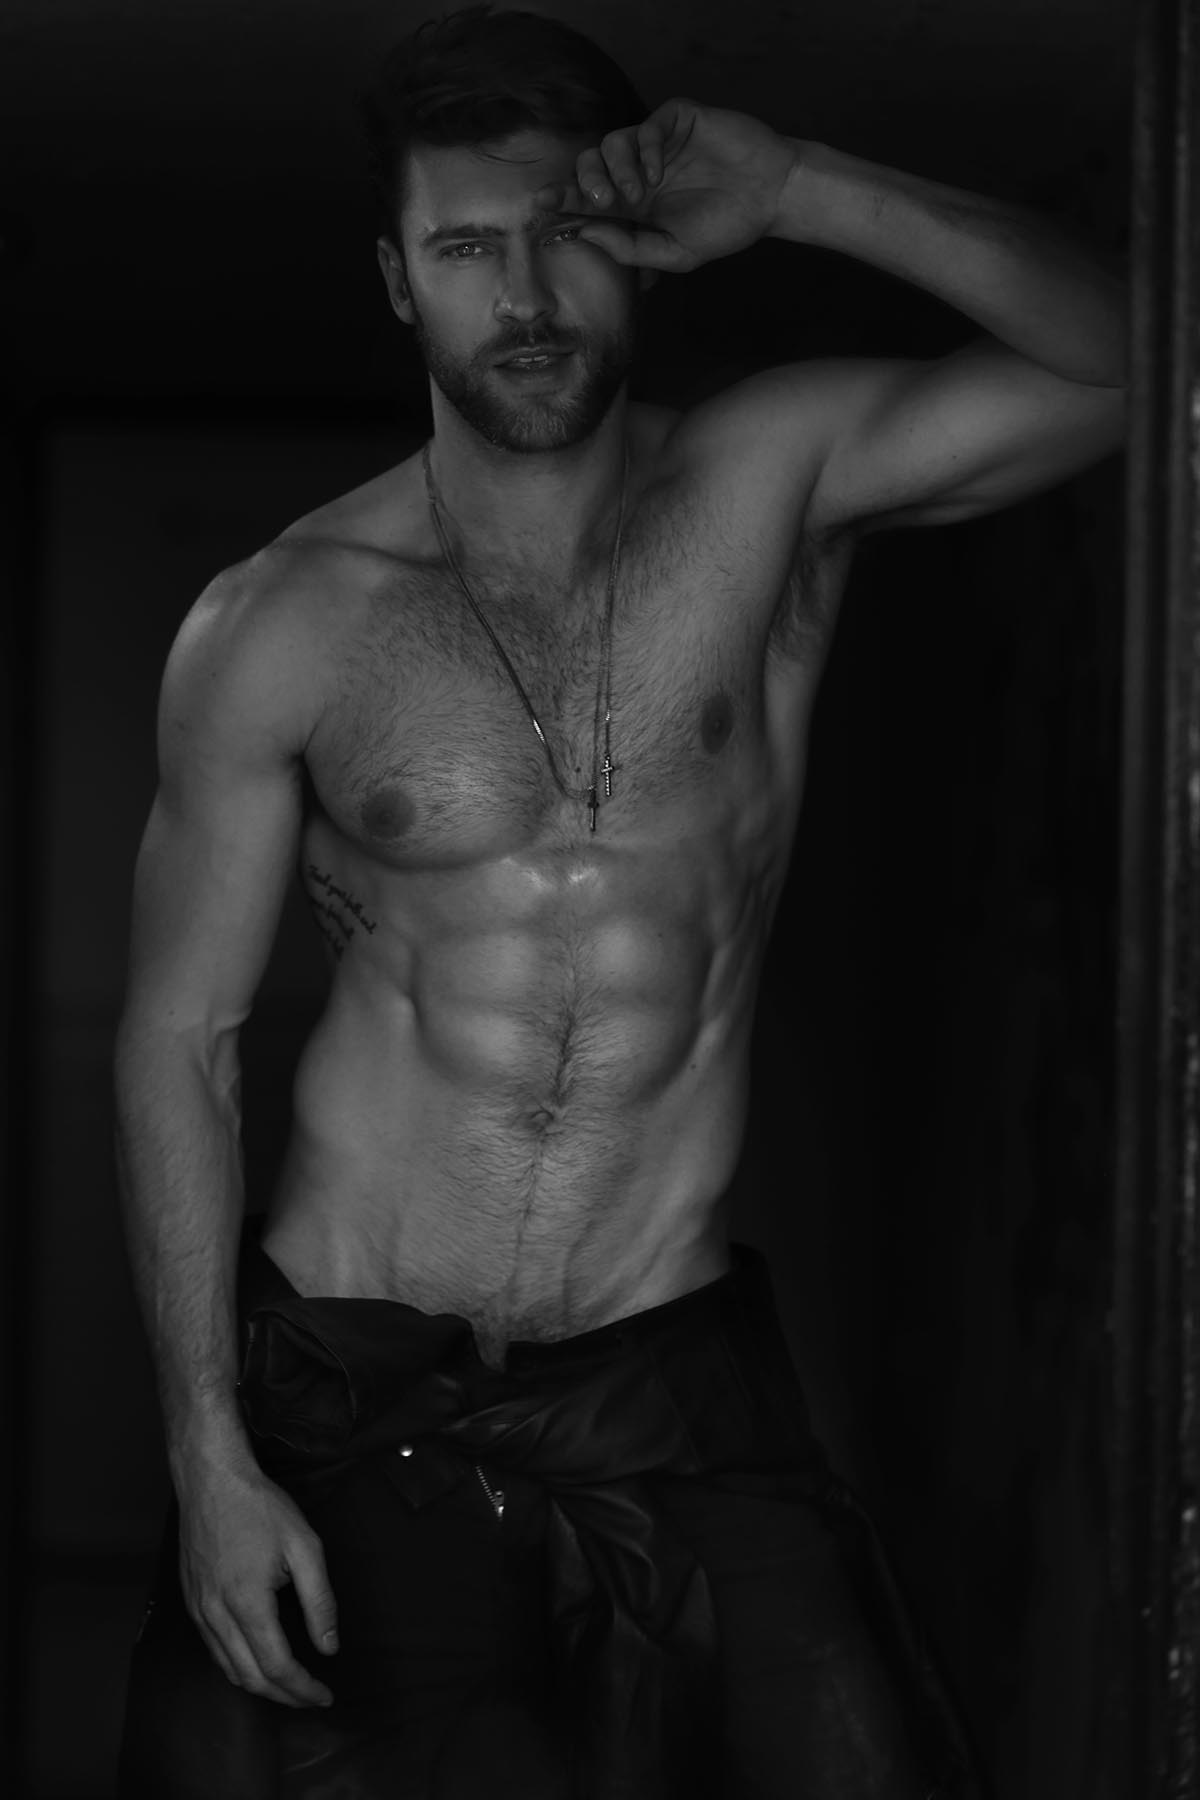 Vinicius Piccoli by Glauber Bassi for Brazilian Male Model